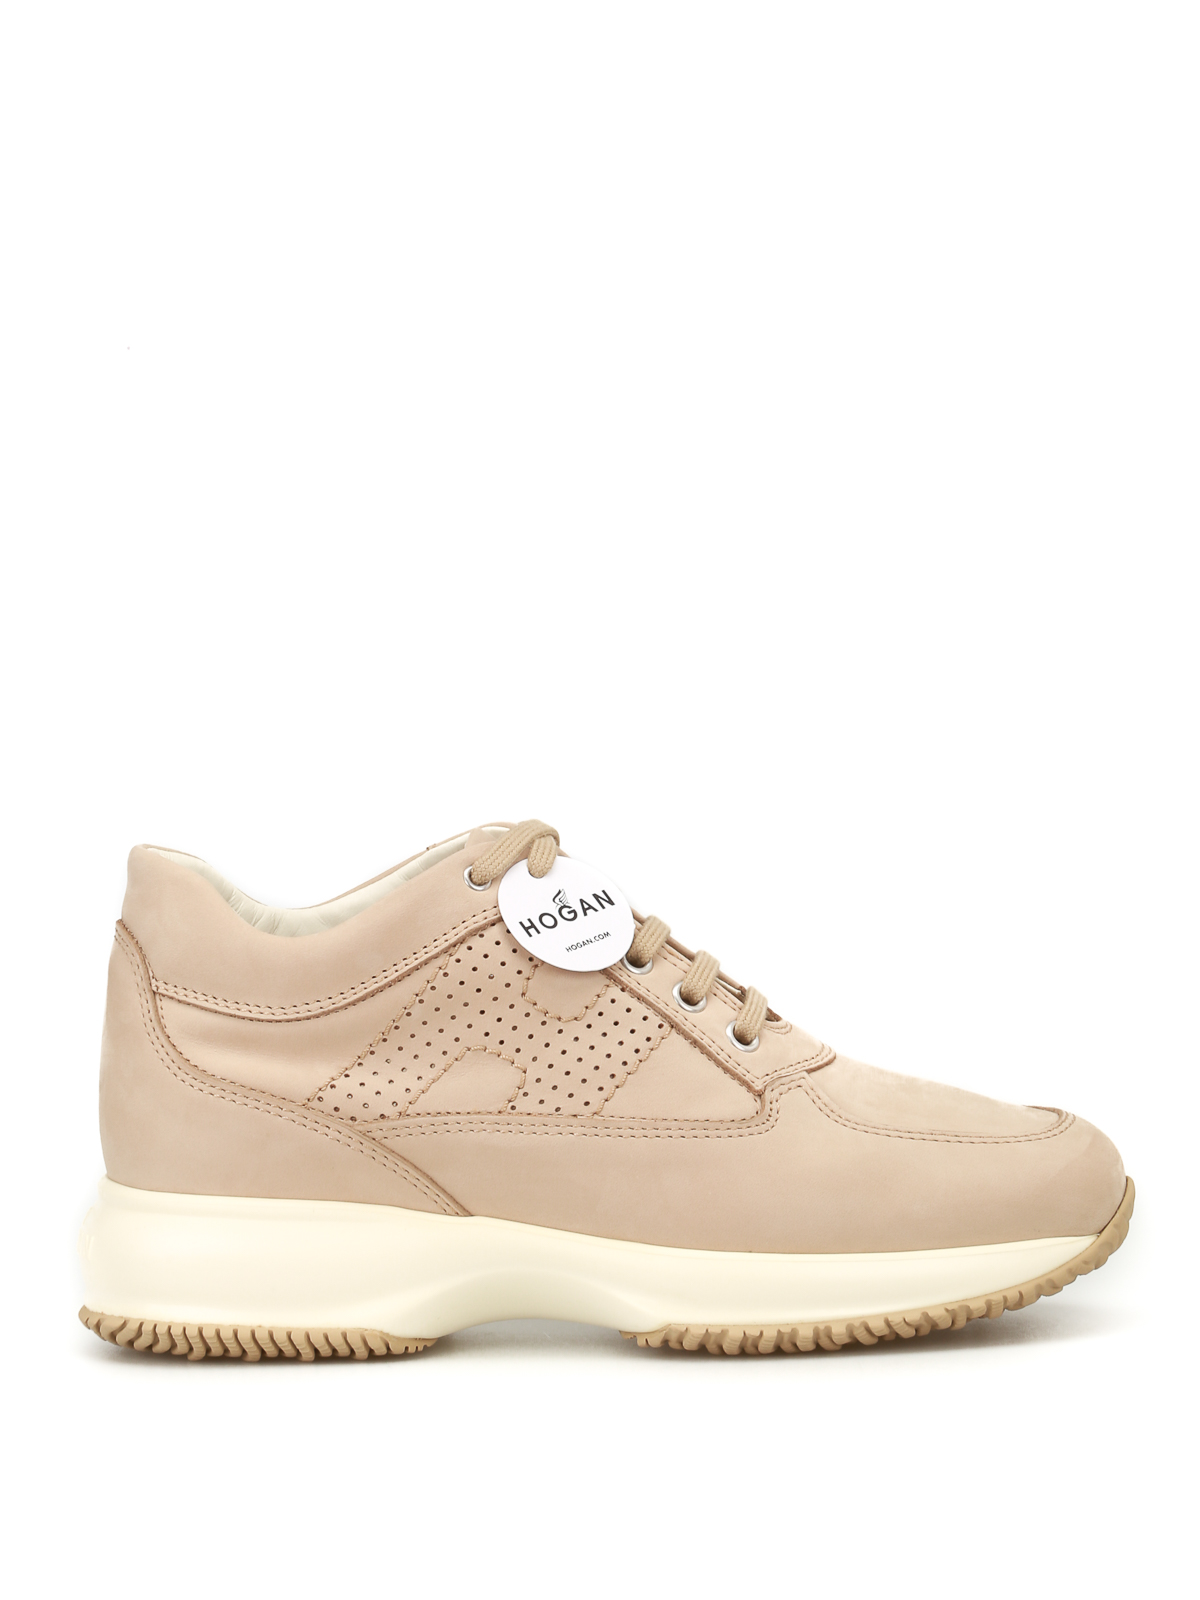 Hogan Shoes Perforated H Interactive Nude Shoes